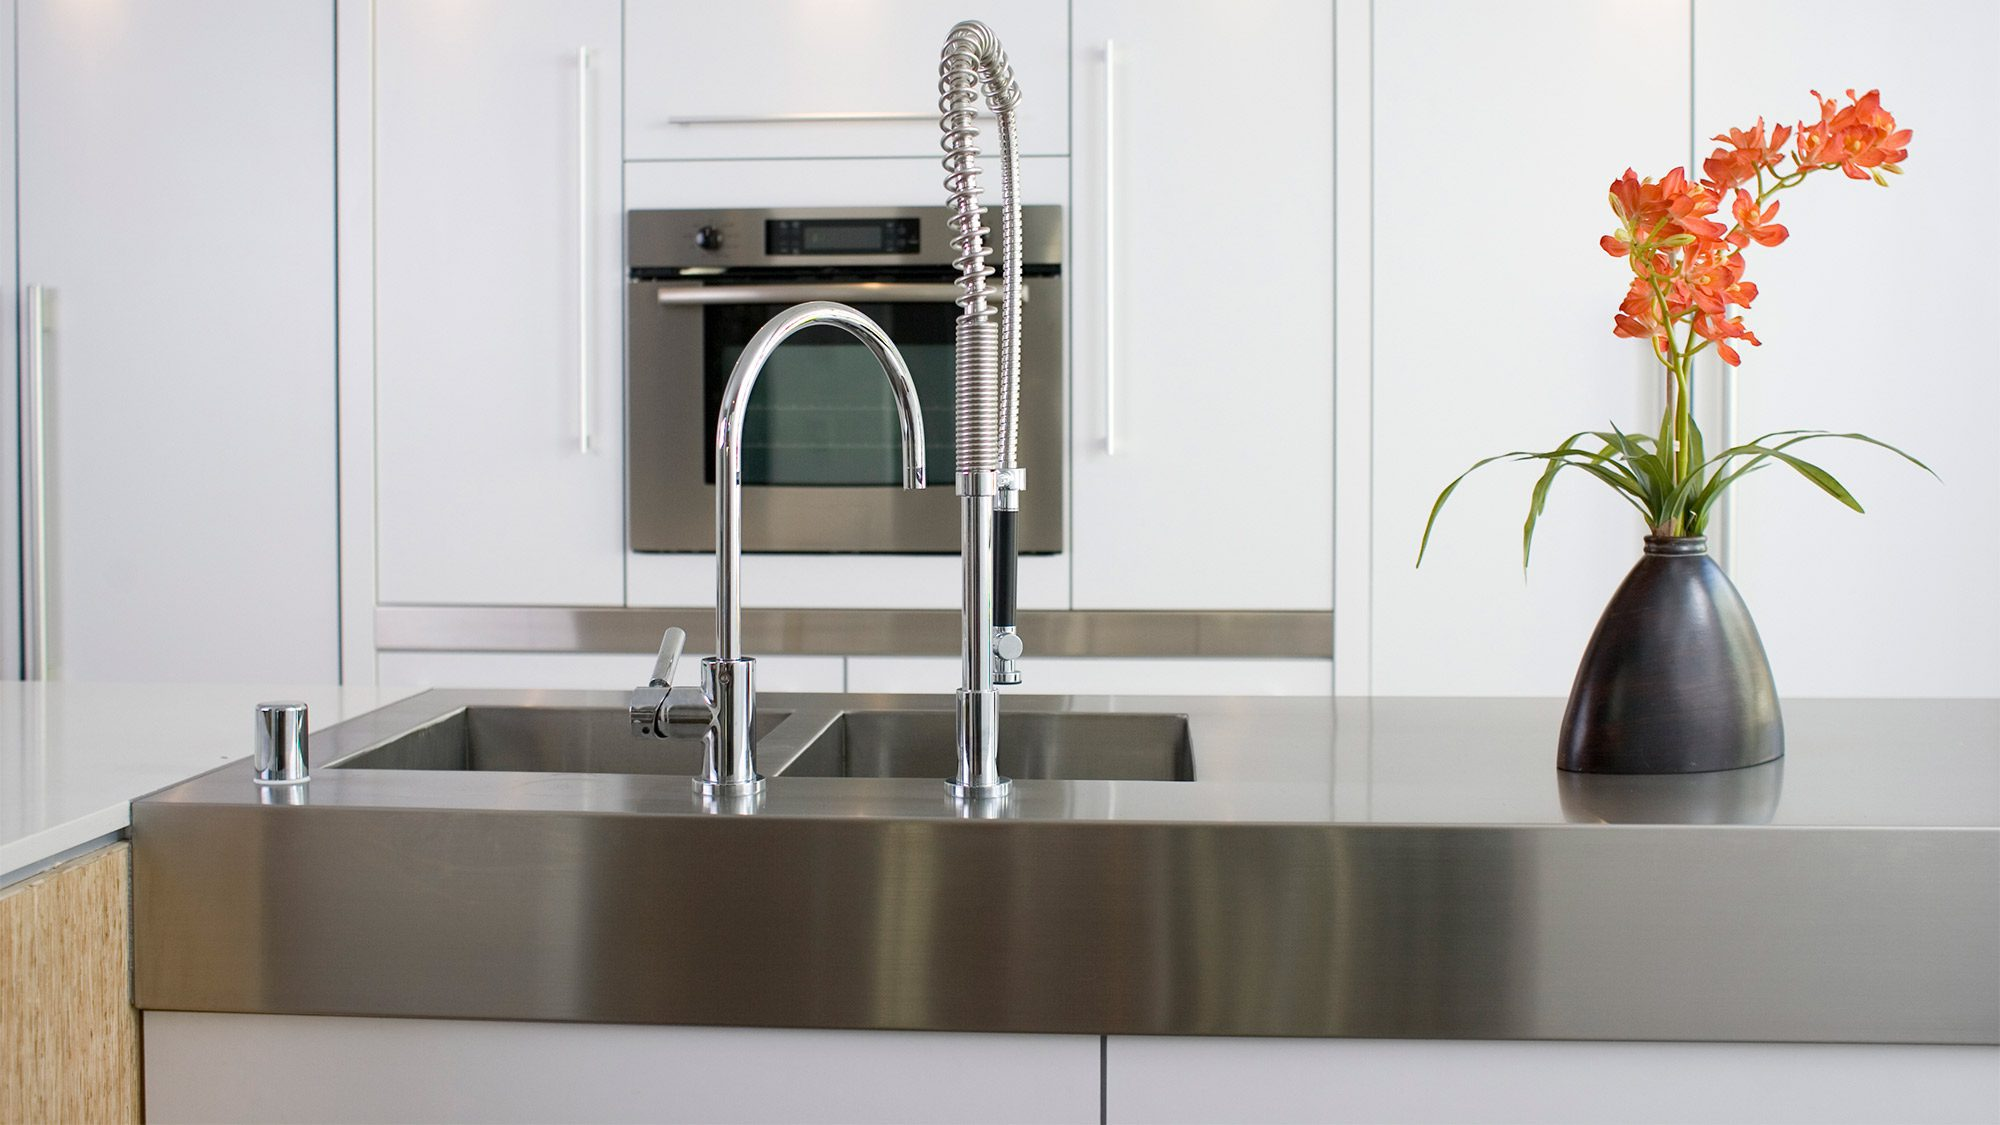 Installing Stainless Steel Countertops Stainless Steel Countertops Advantages Cost Care And More